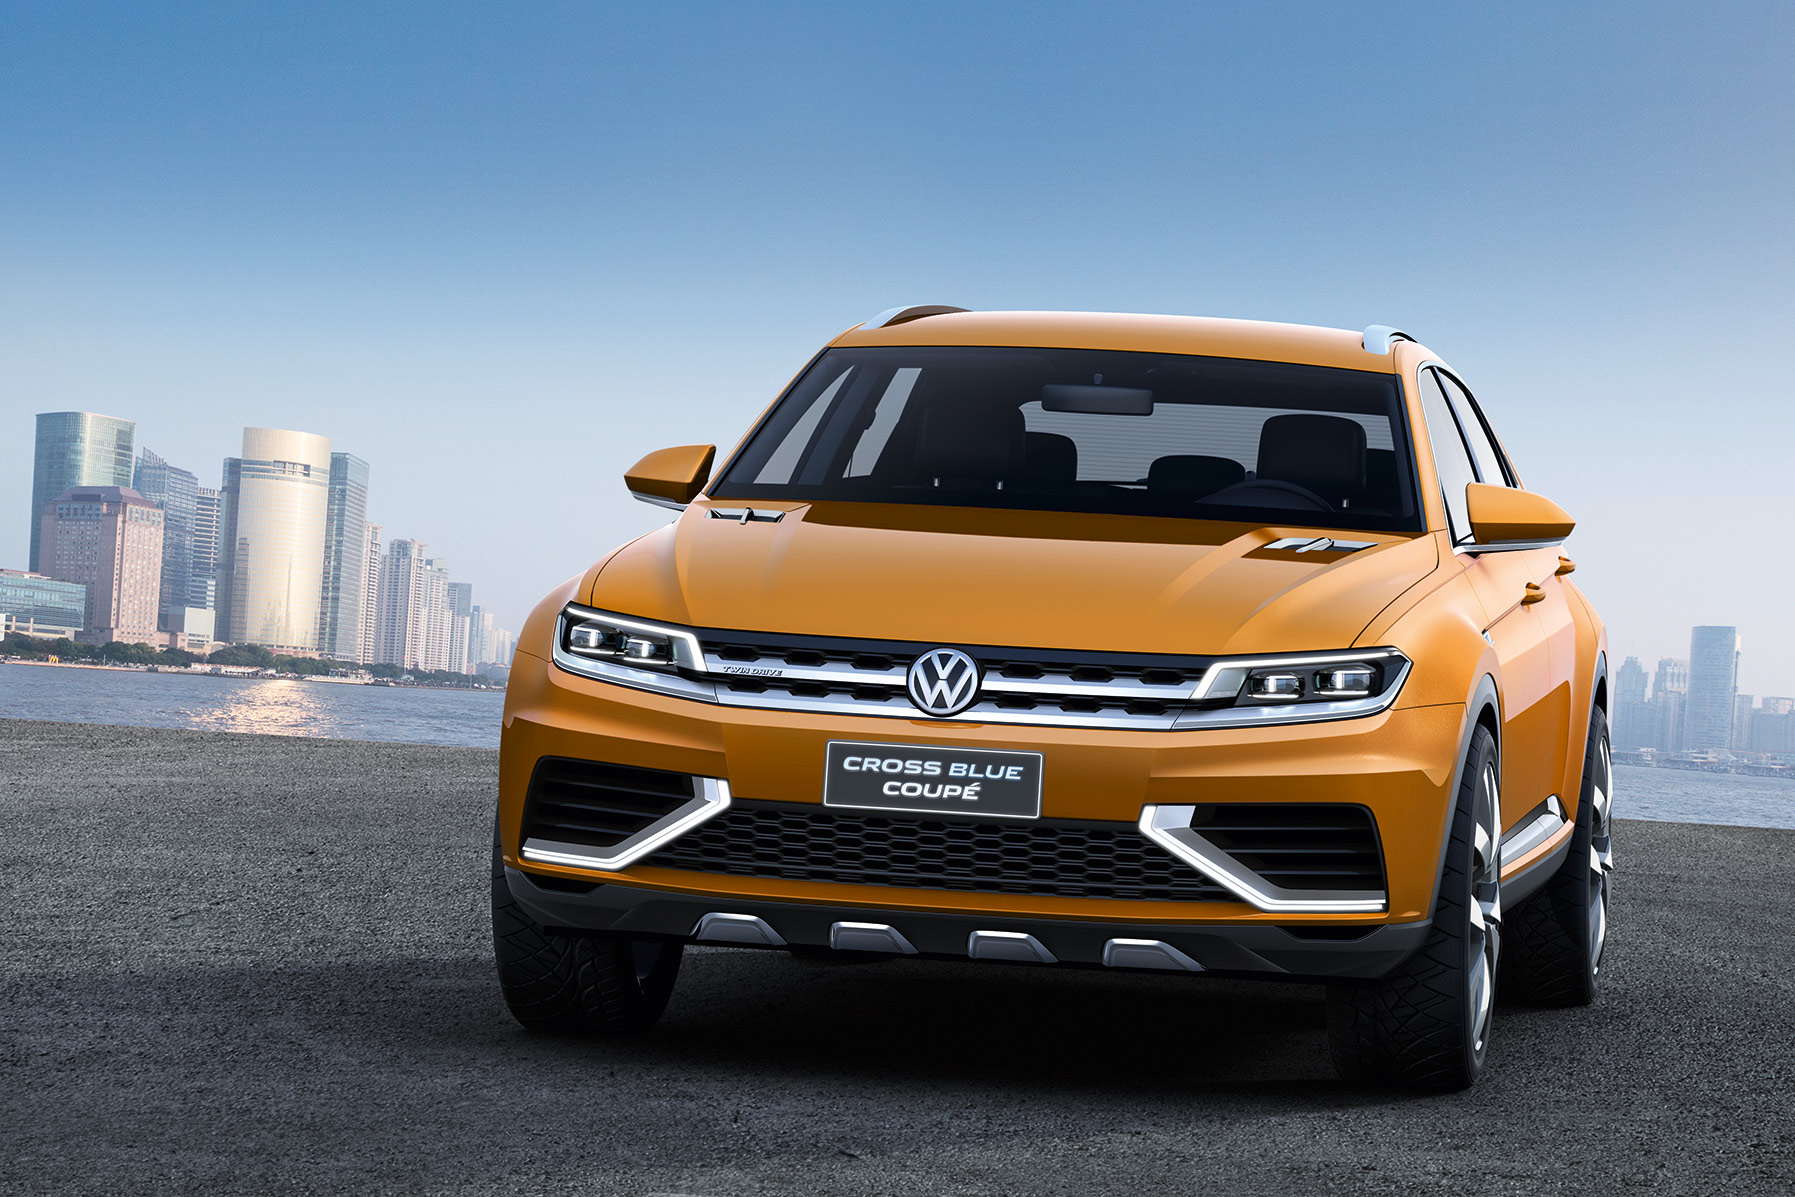 volkswagen-crossblue-coupe-concept-011